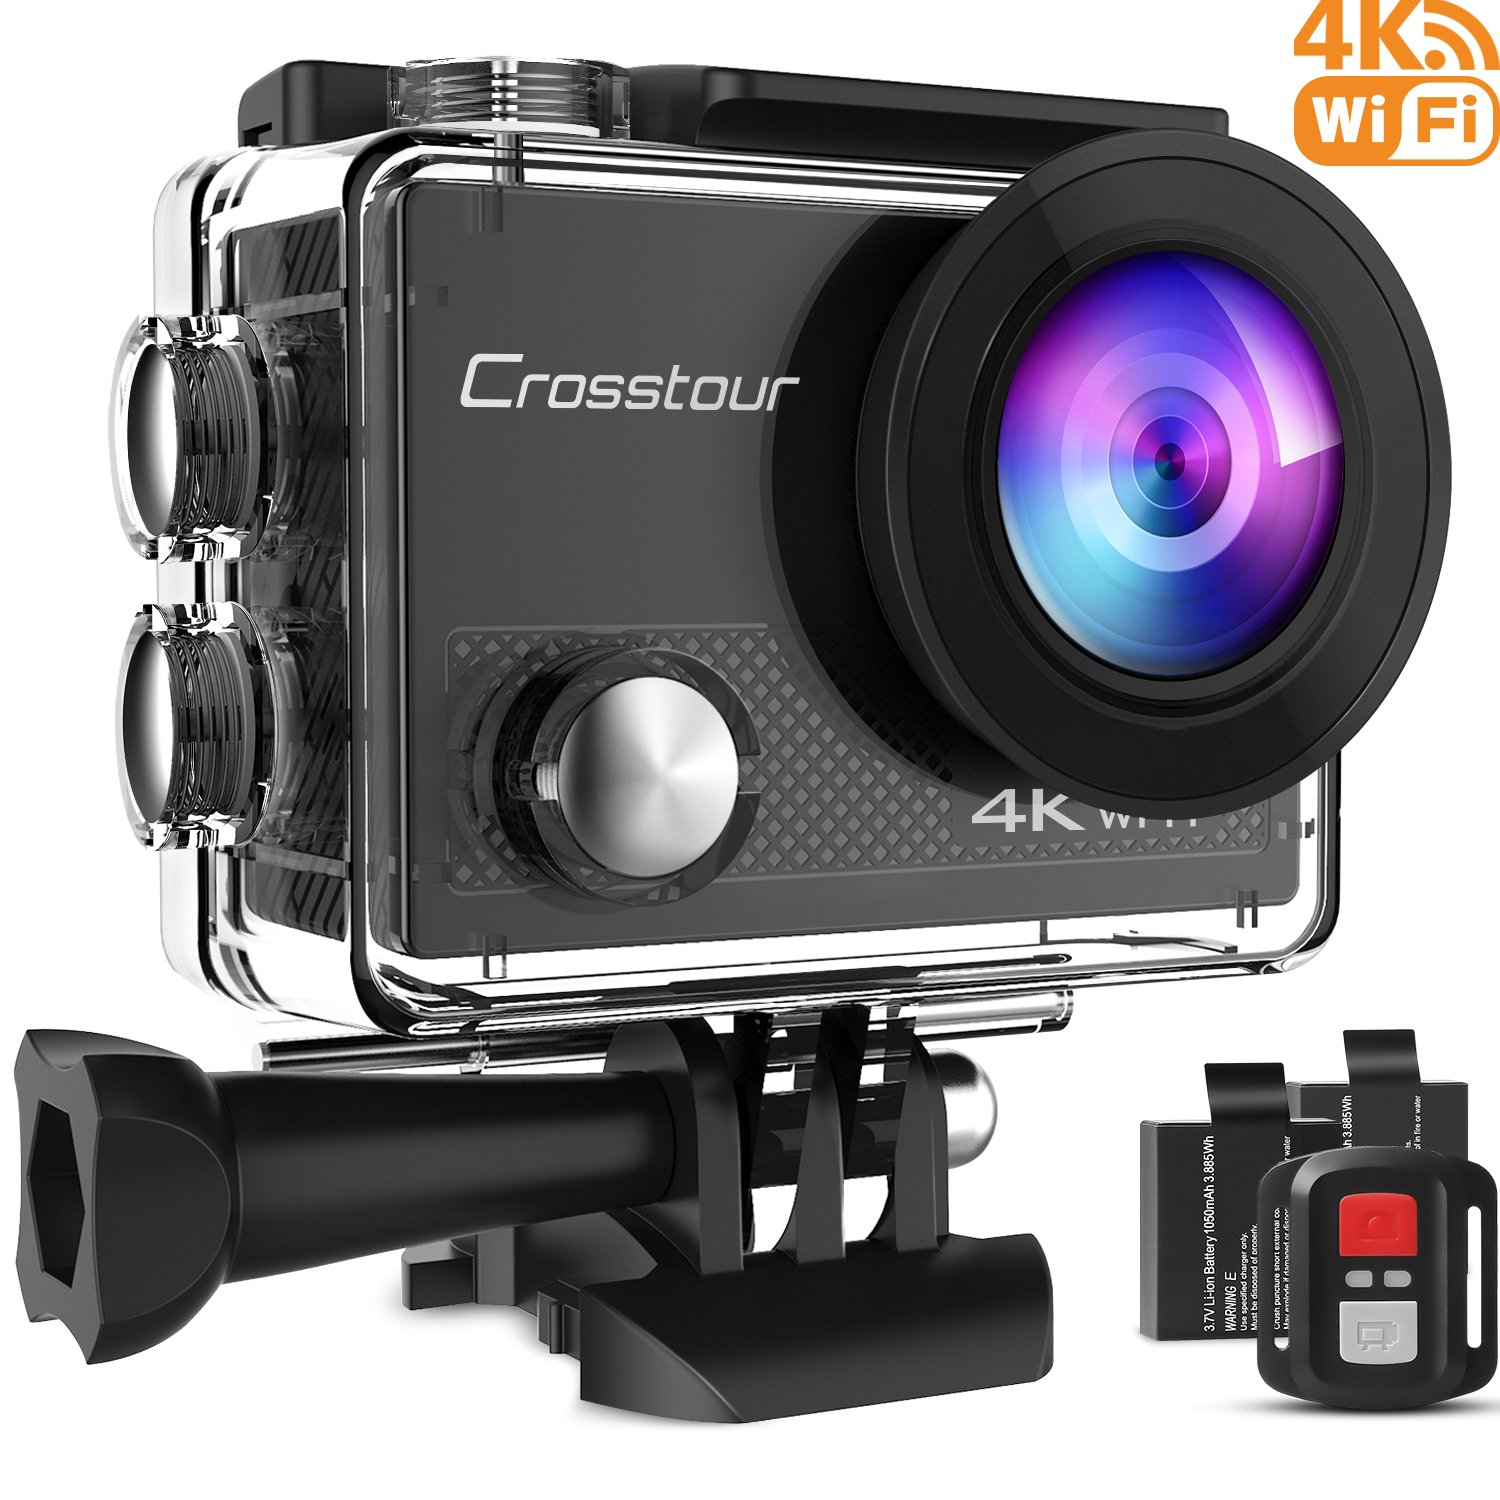 Crosstour Action Camera 4K WIFI Underwater Cam 16MP Sports Camera with Remote Control 170°Wide-angle 2 Inch LCD Plus 2 Rechargeable 1050mAh Batteries and Mounting Accessories Kit by Crosstour